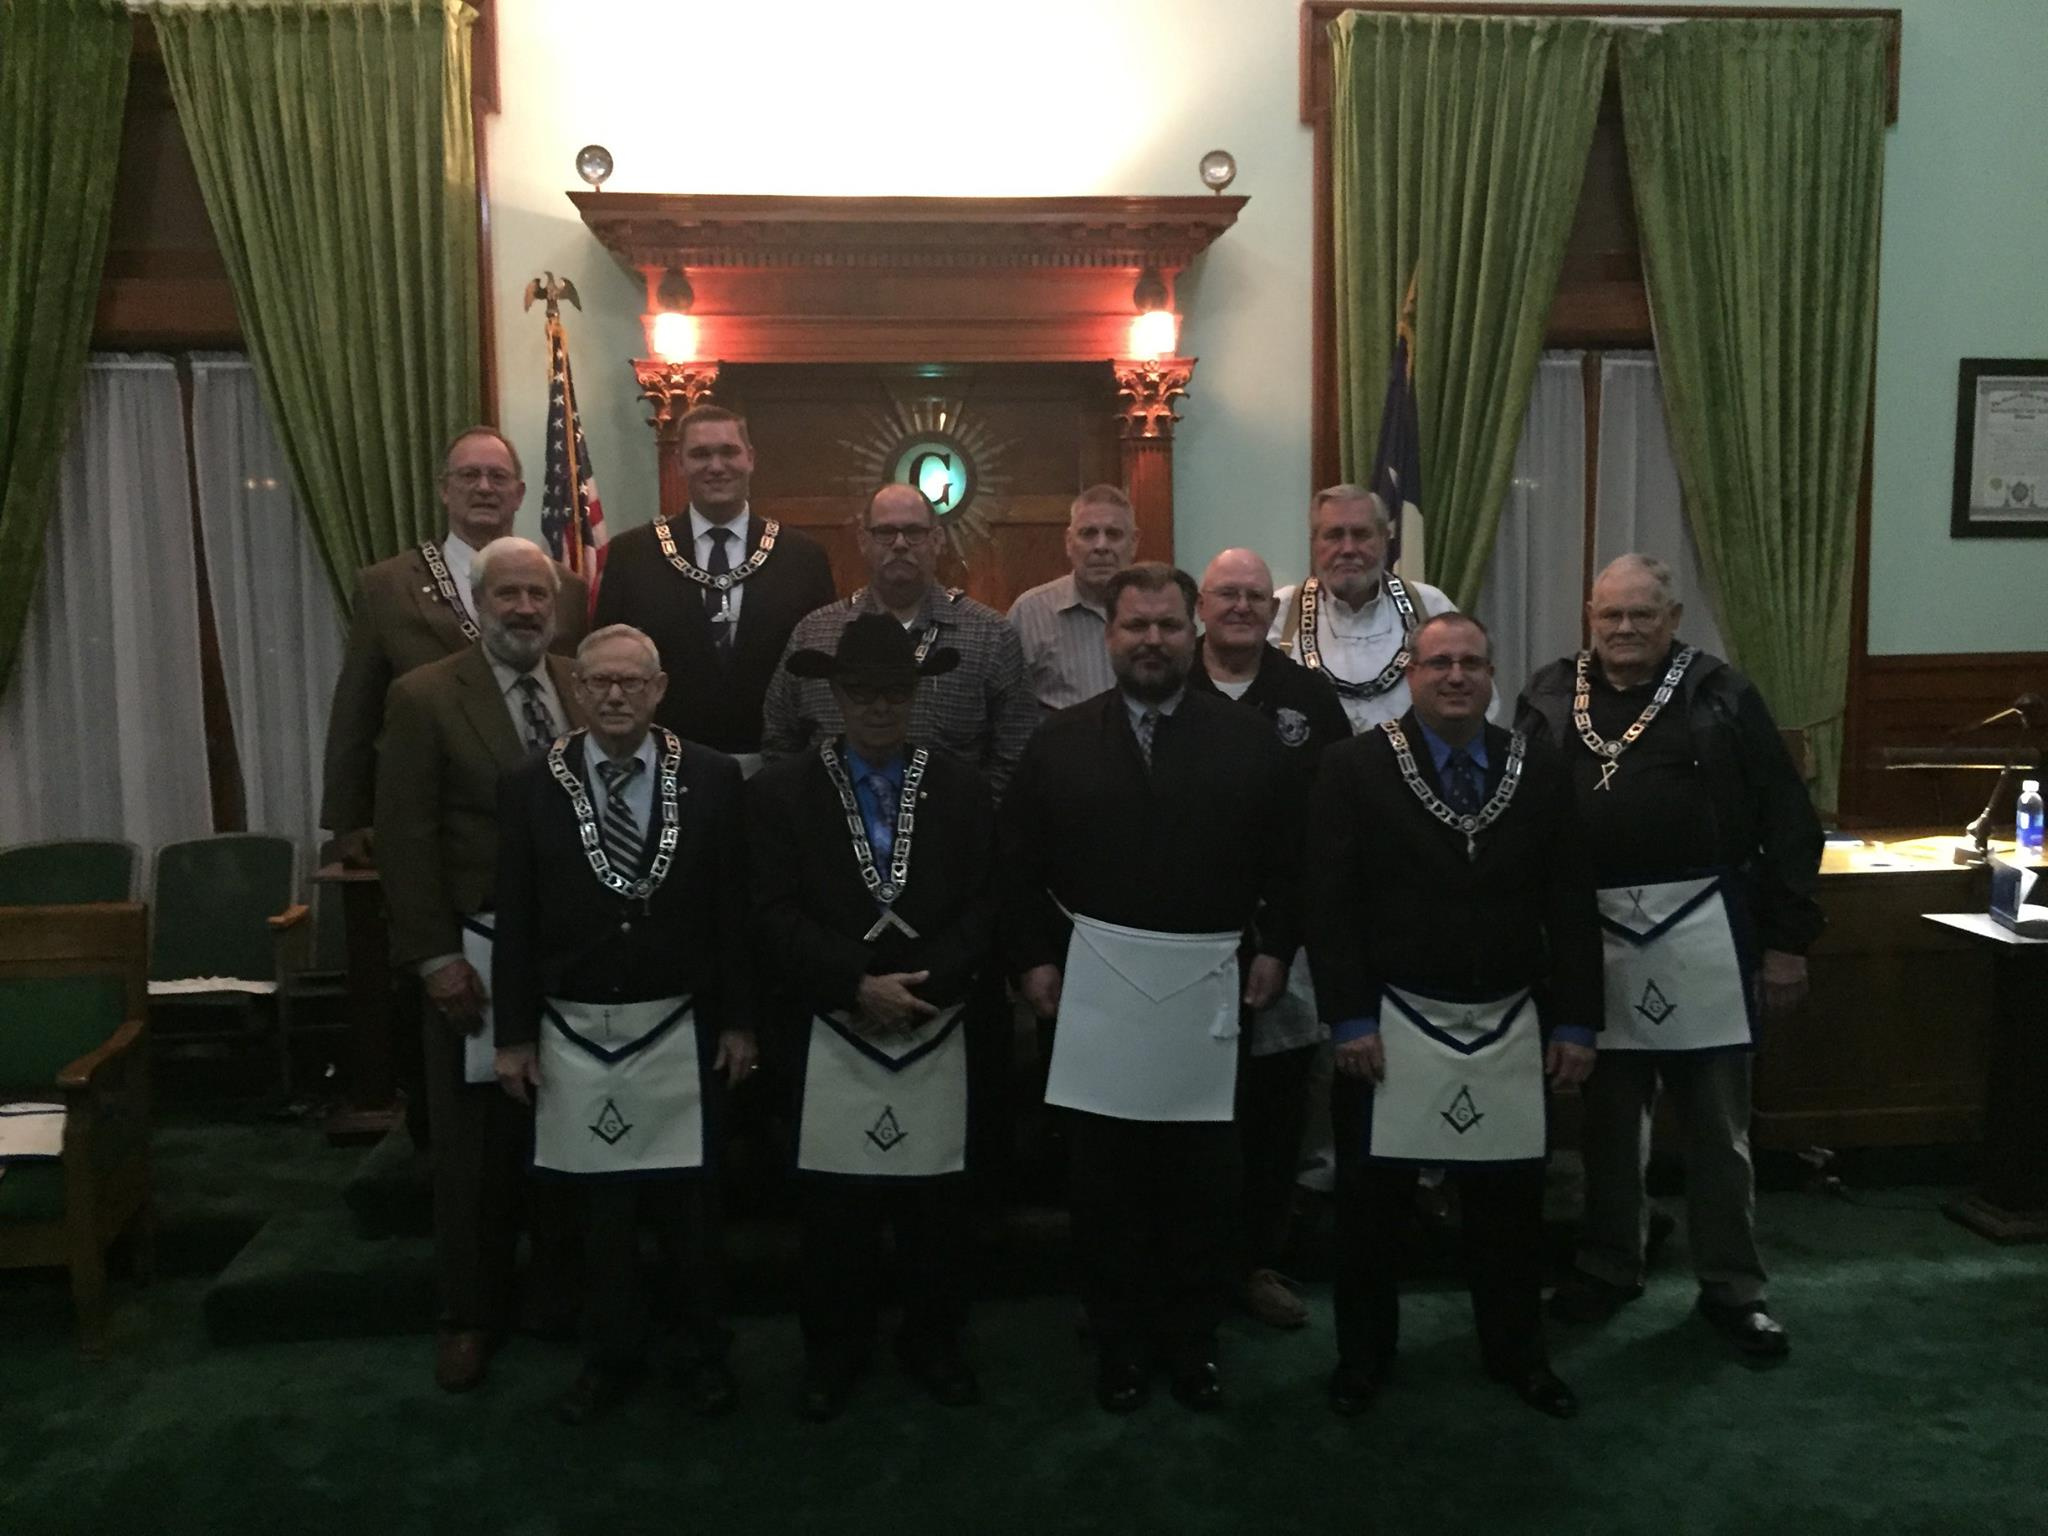 Tannehill Masonic Lodge MM Degree